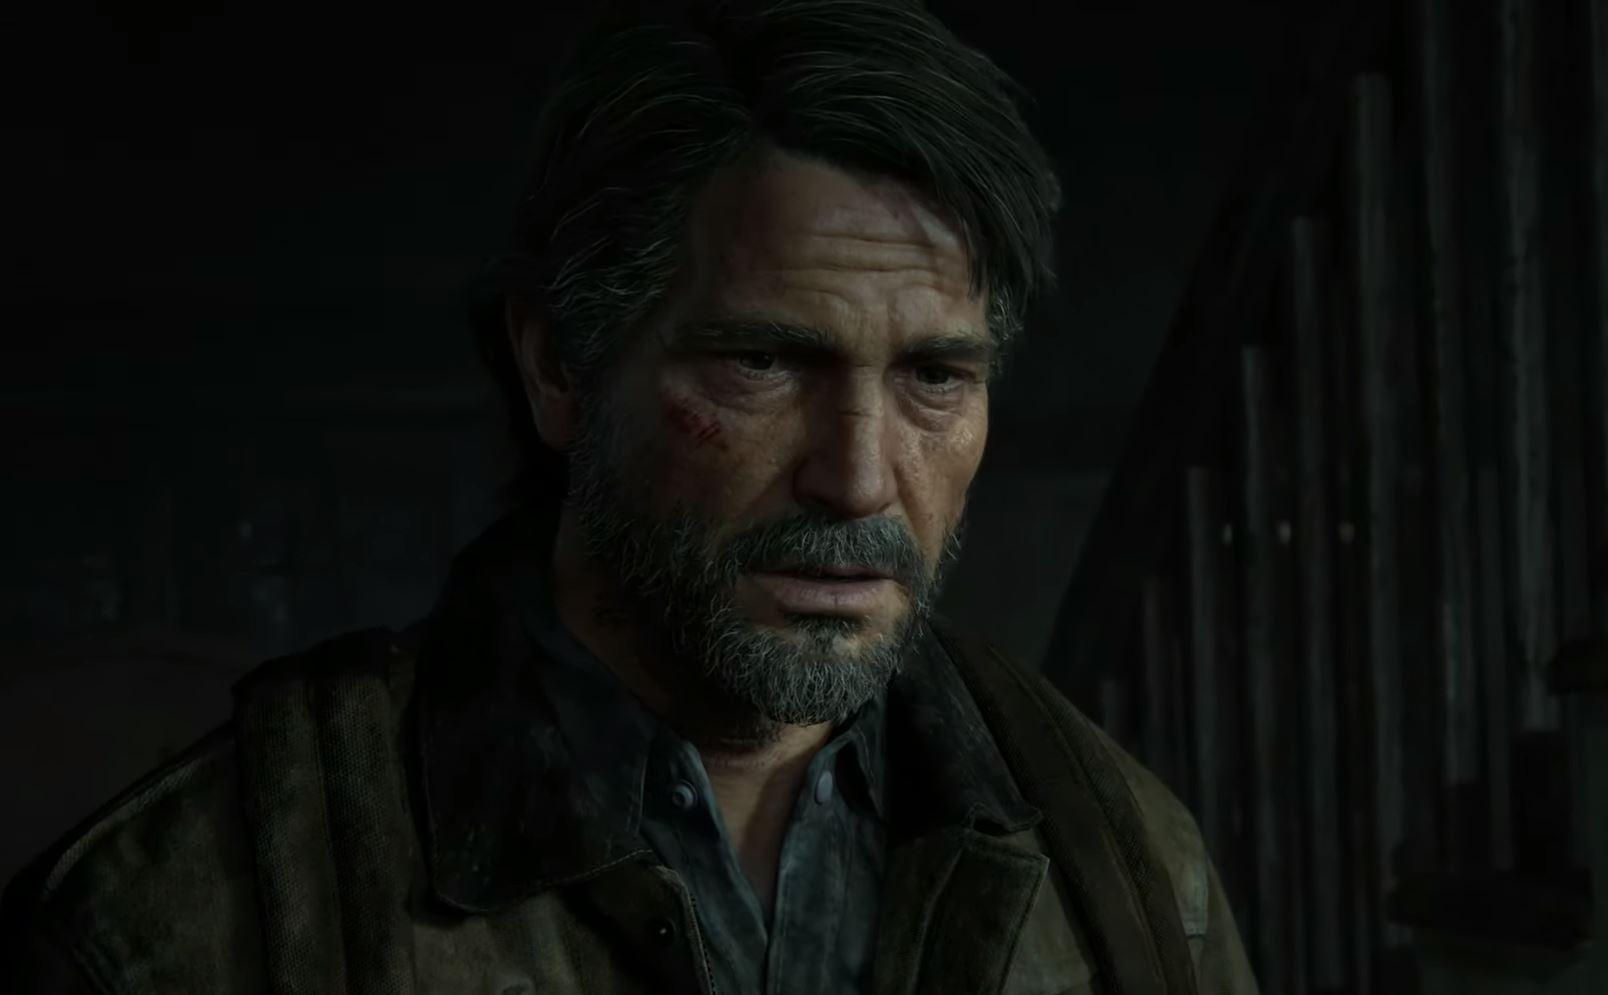 Release date for The Last of Us Part II revealed